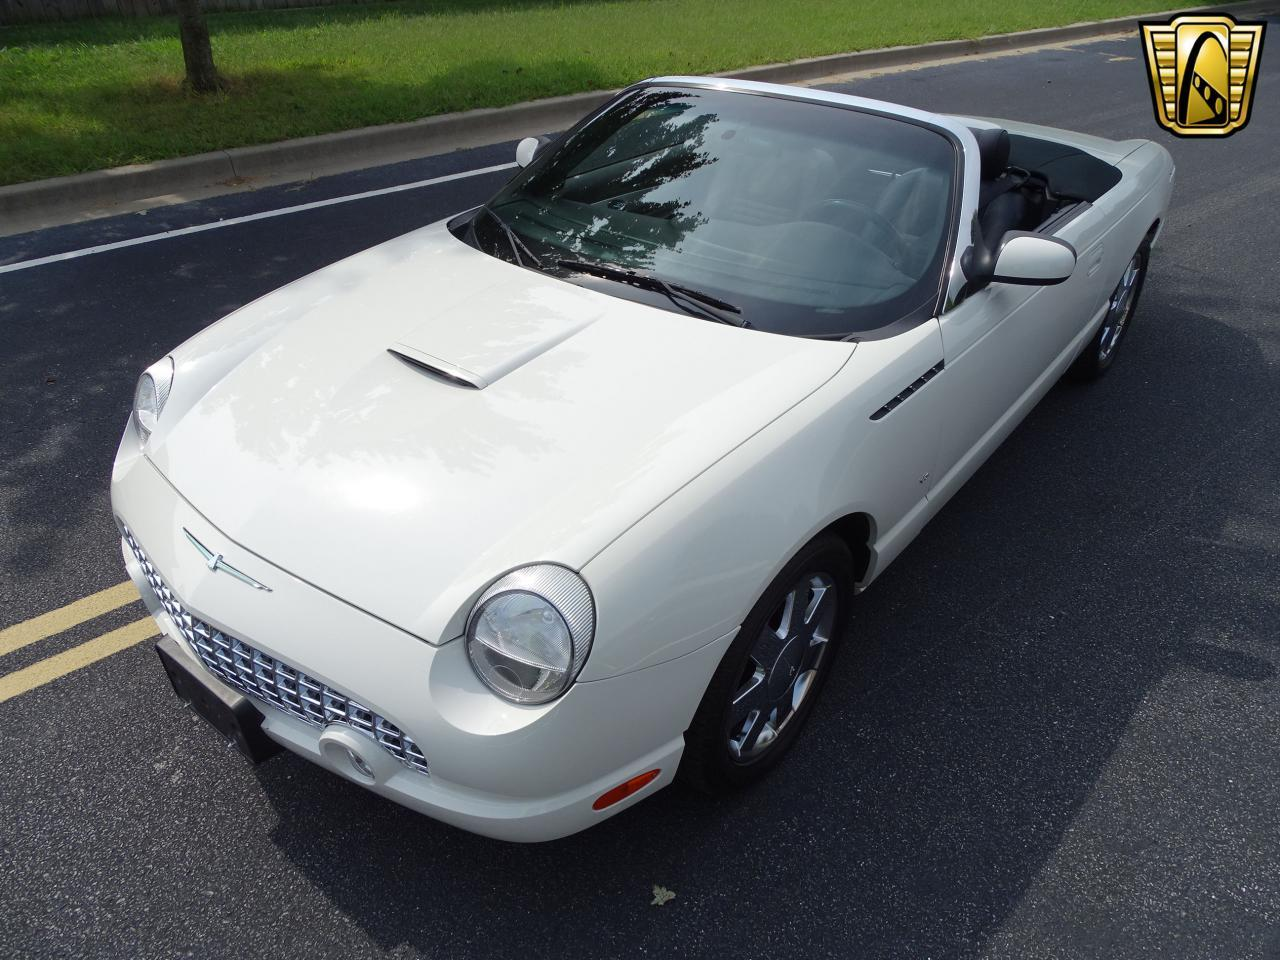 Large Picture of 2003 Ford Thunderbird located in O'Fallon Illinois Offered by Gateway Classic Cars - St. Louis - QB5Q